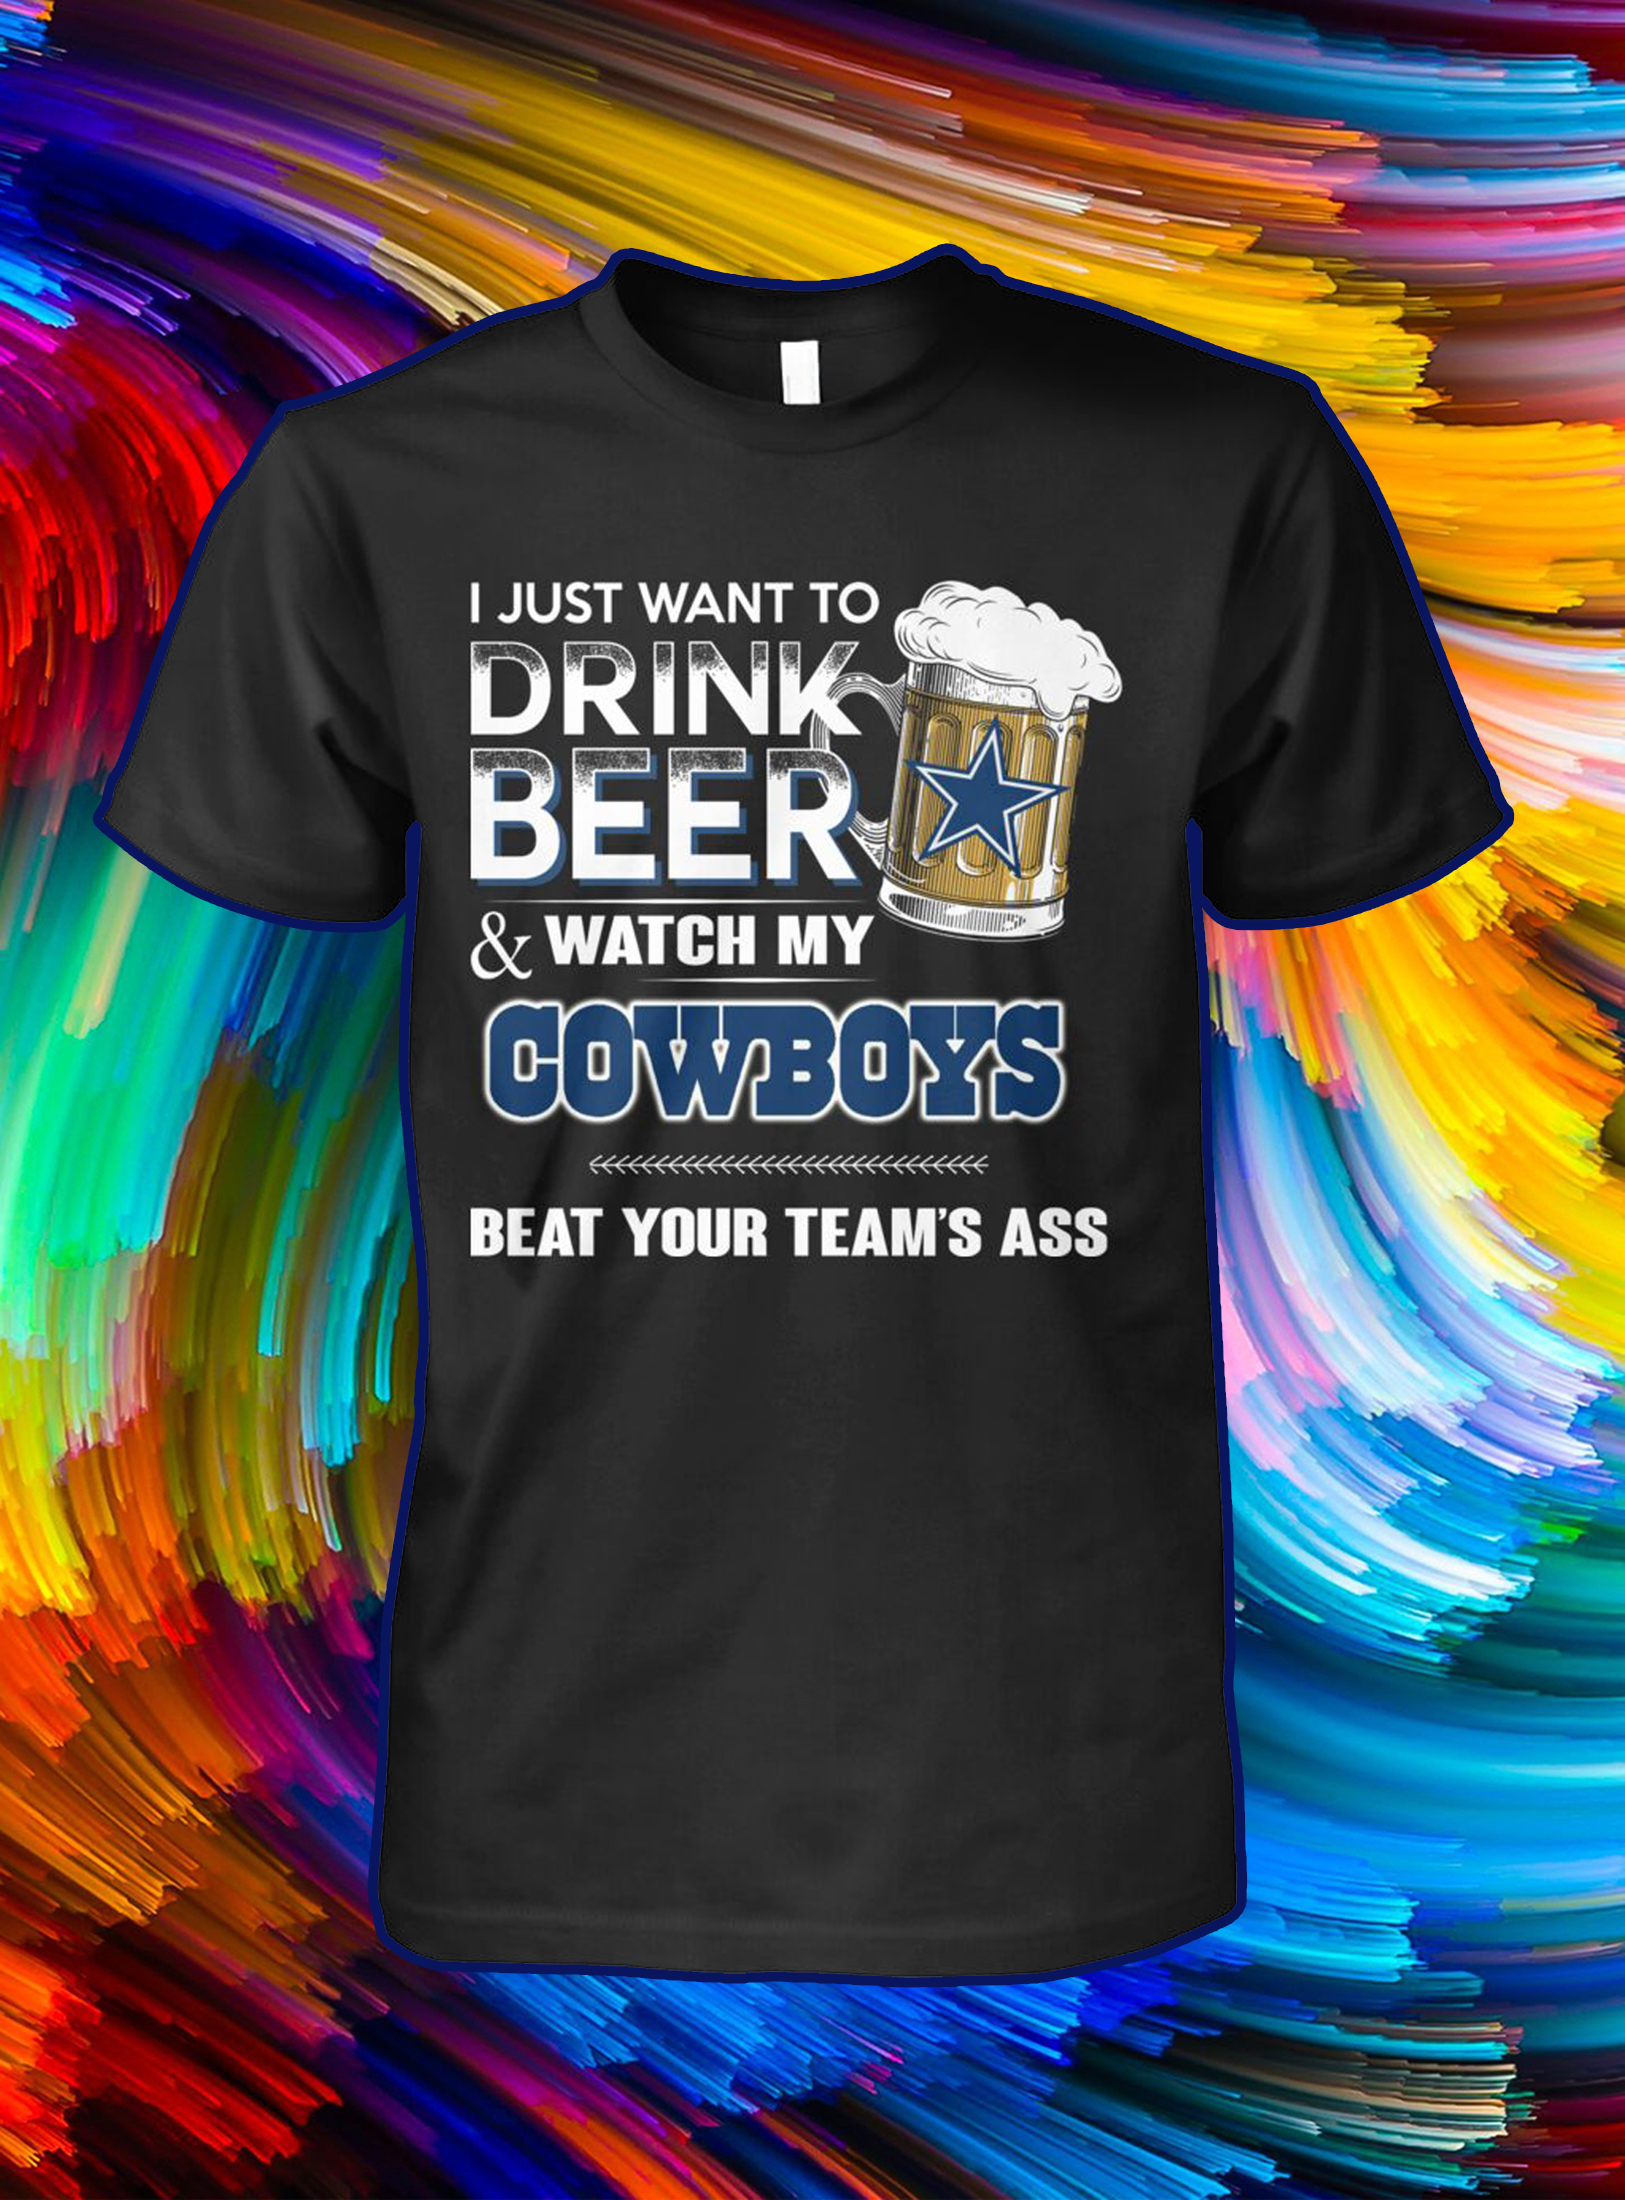 I just want to drink beer and watch my cowboys beat your team's ass shirt